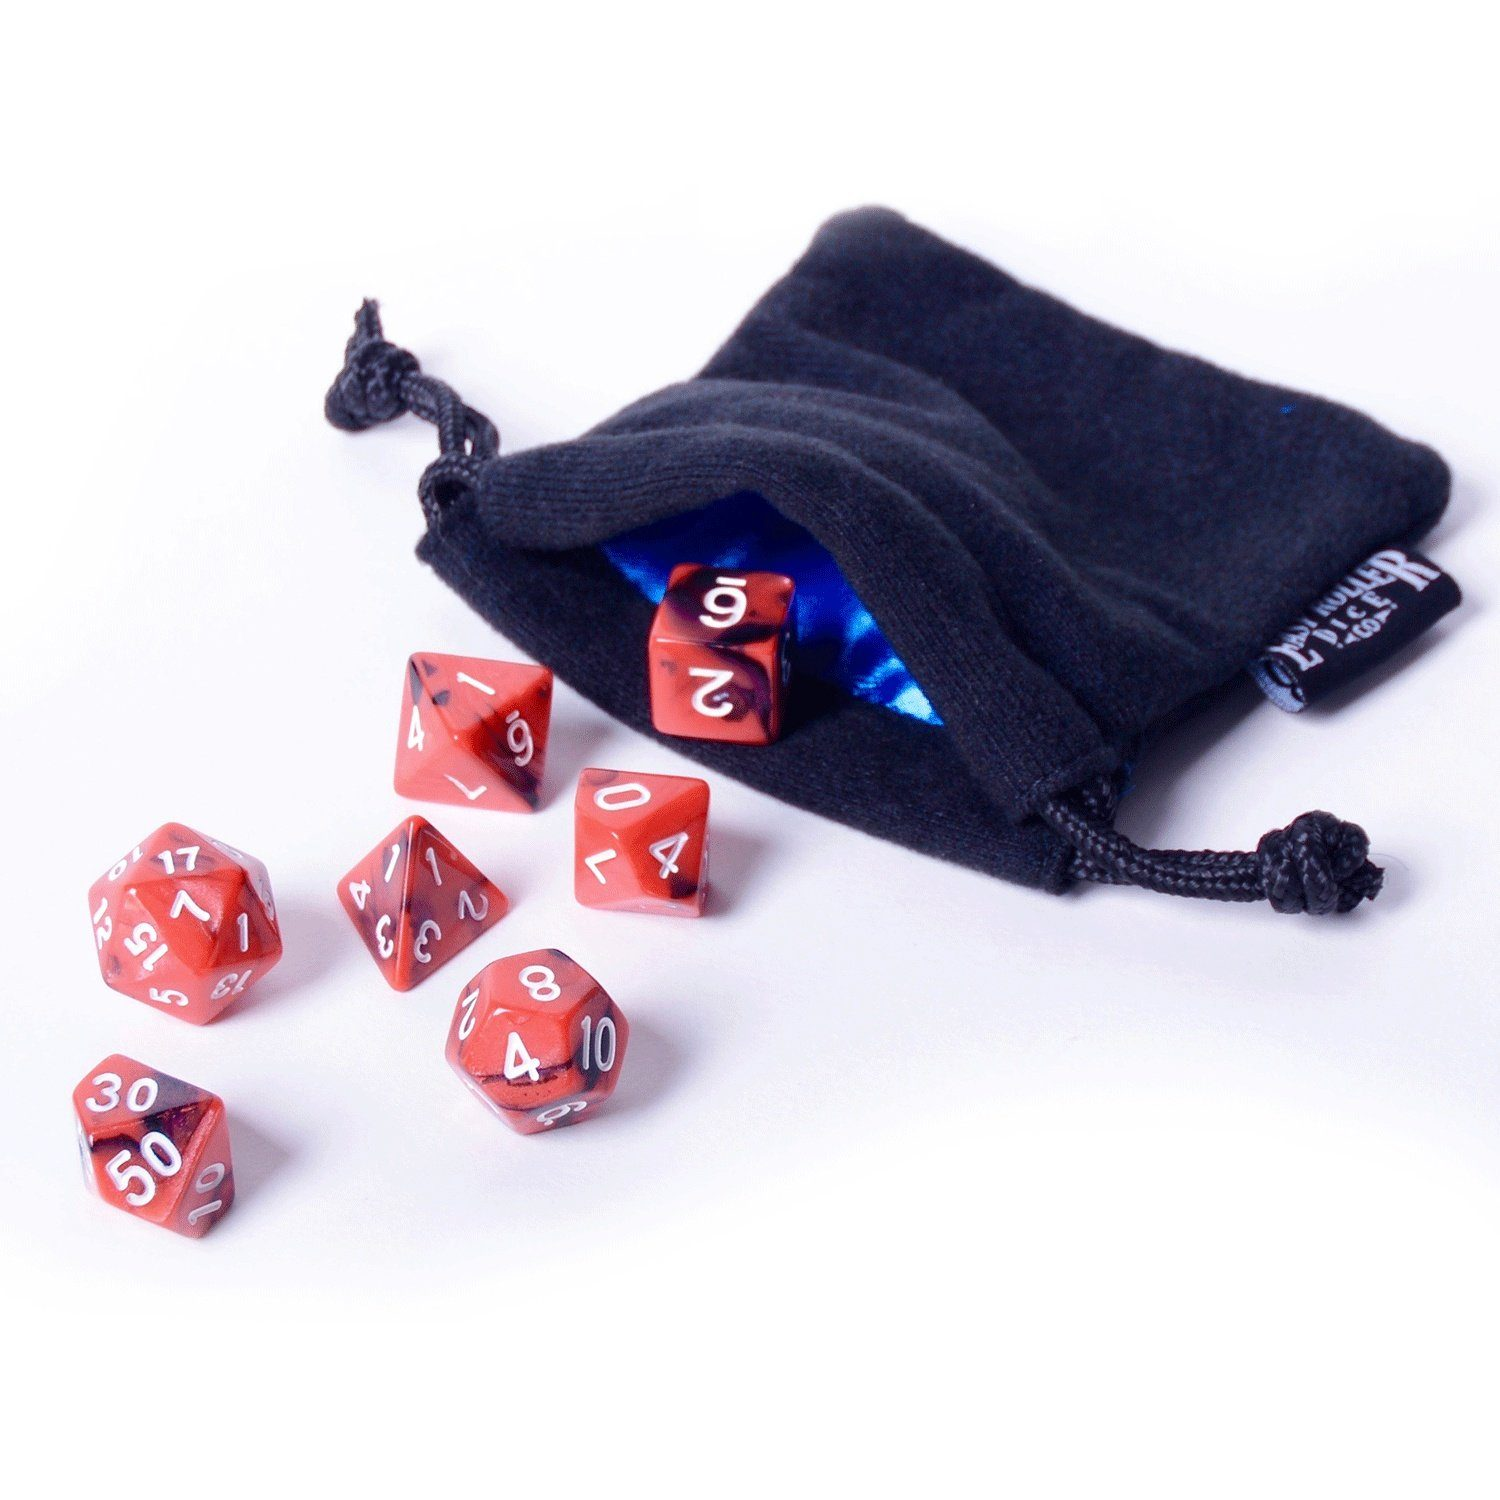 Fireball Dice  Red With Black Swirl - 7 Piece Set With Bag